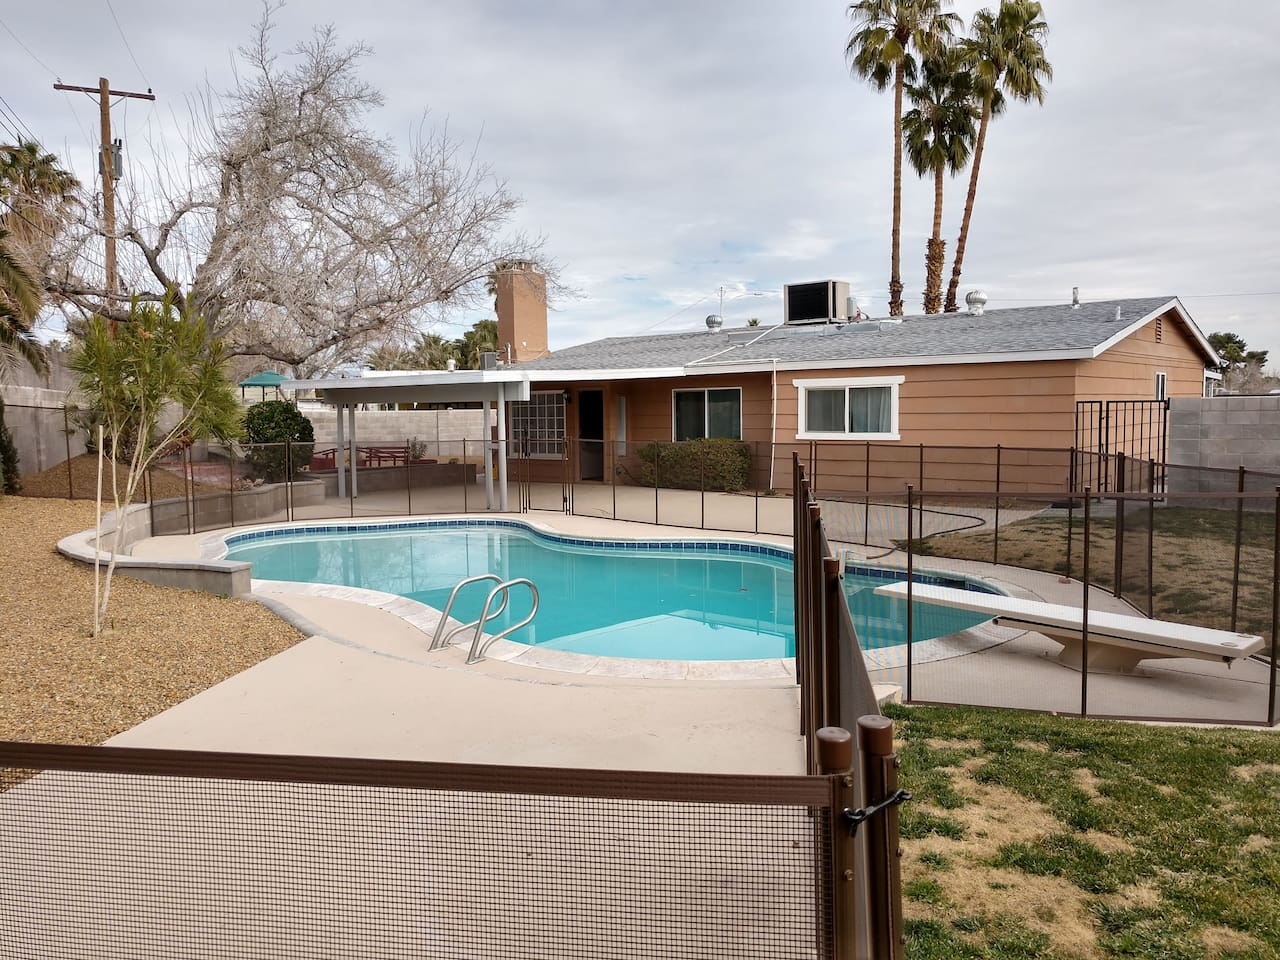 Private backyard fenced in pool with diving pool